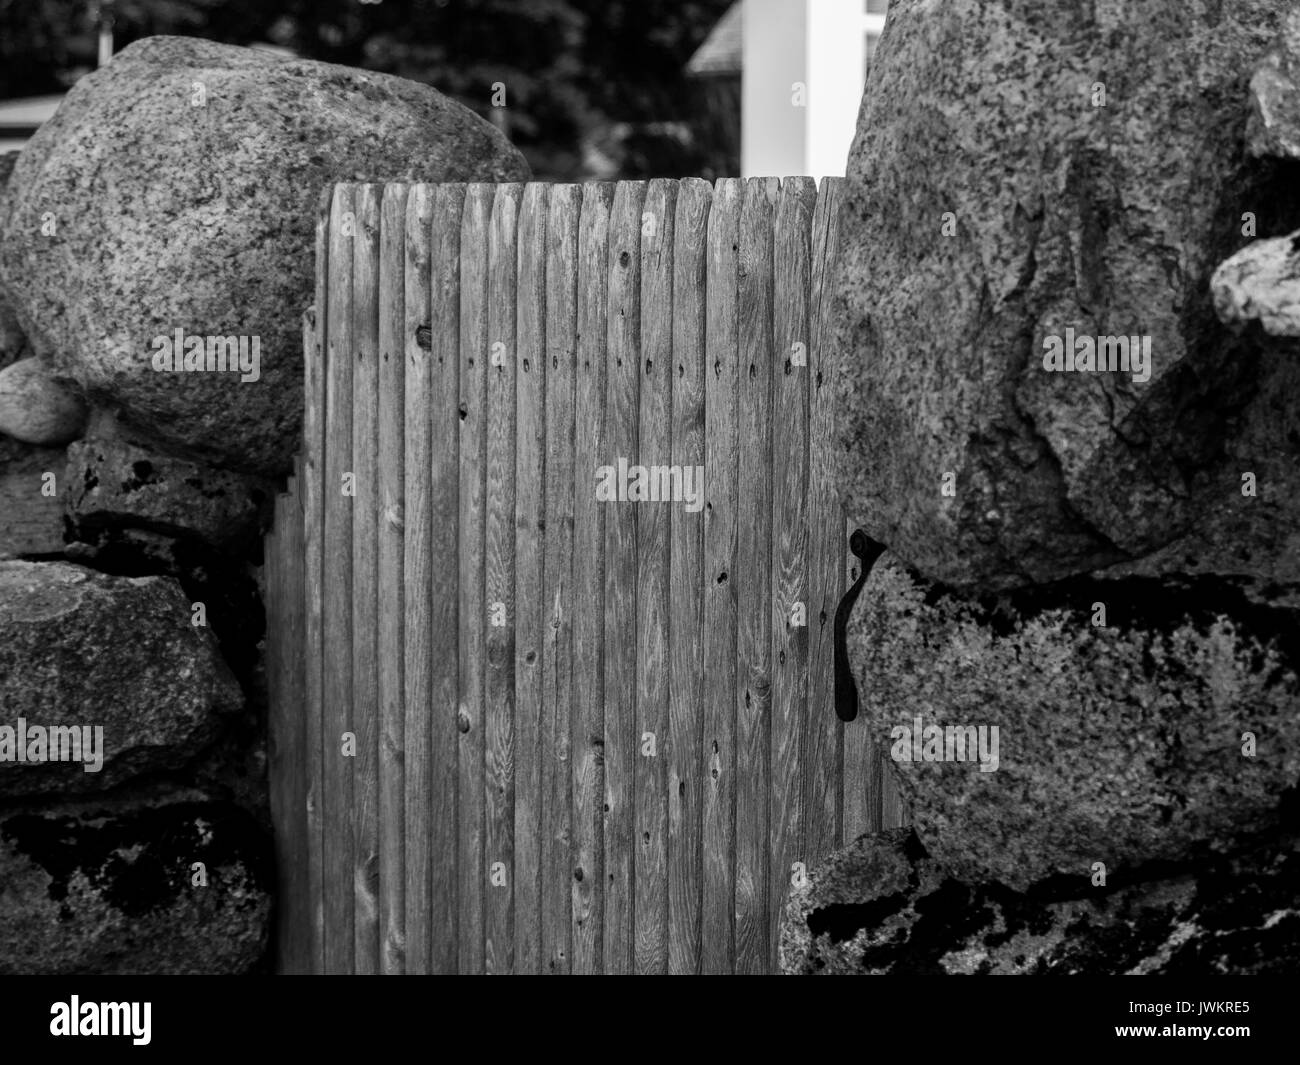 A b;ack and white image of a wooden gate flanked by gateposts of large granite rocks - Stock Image